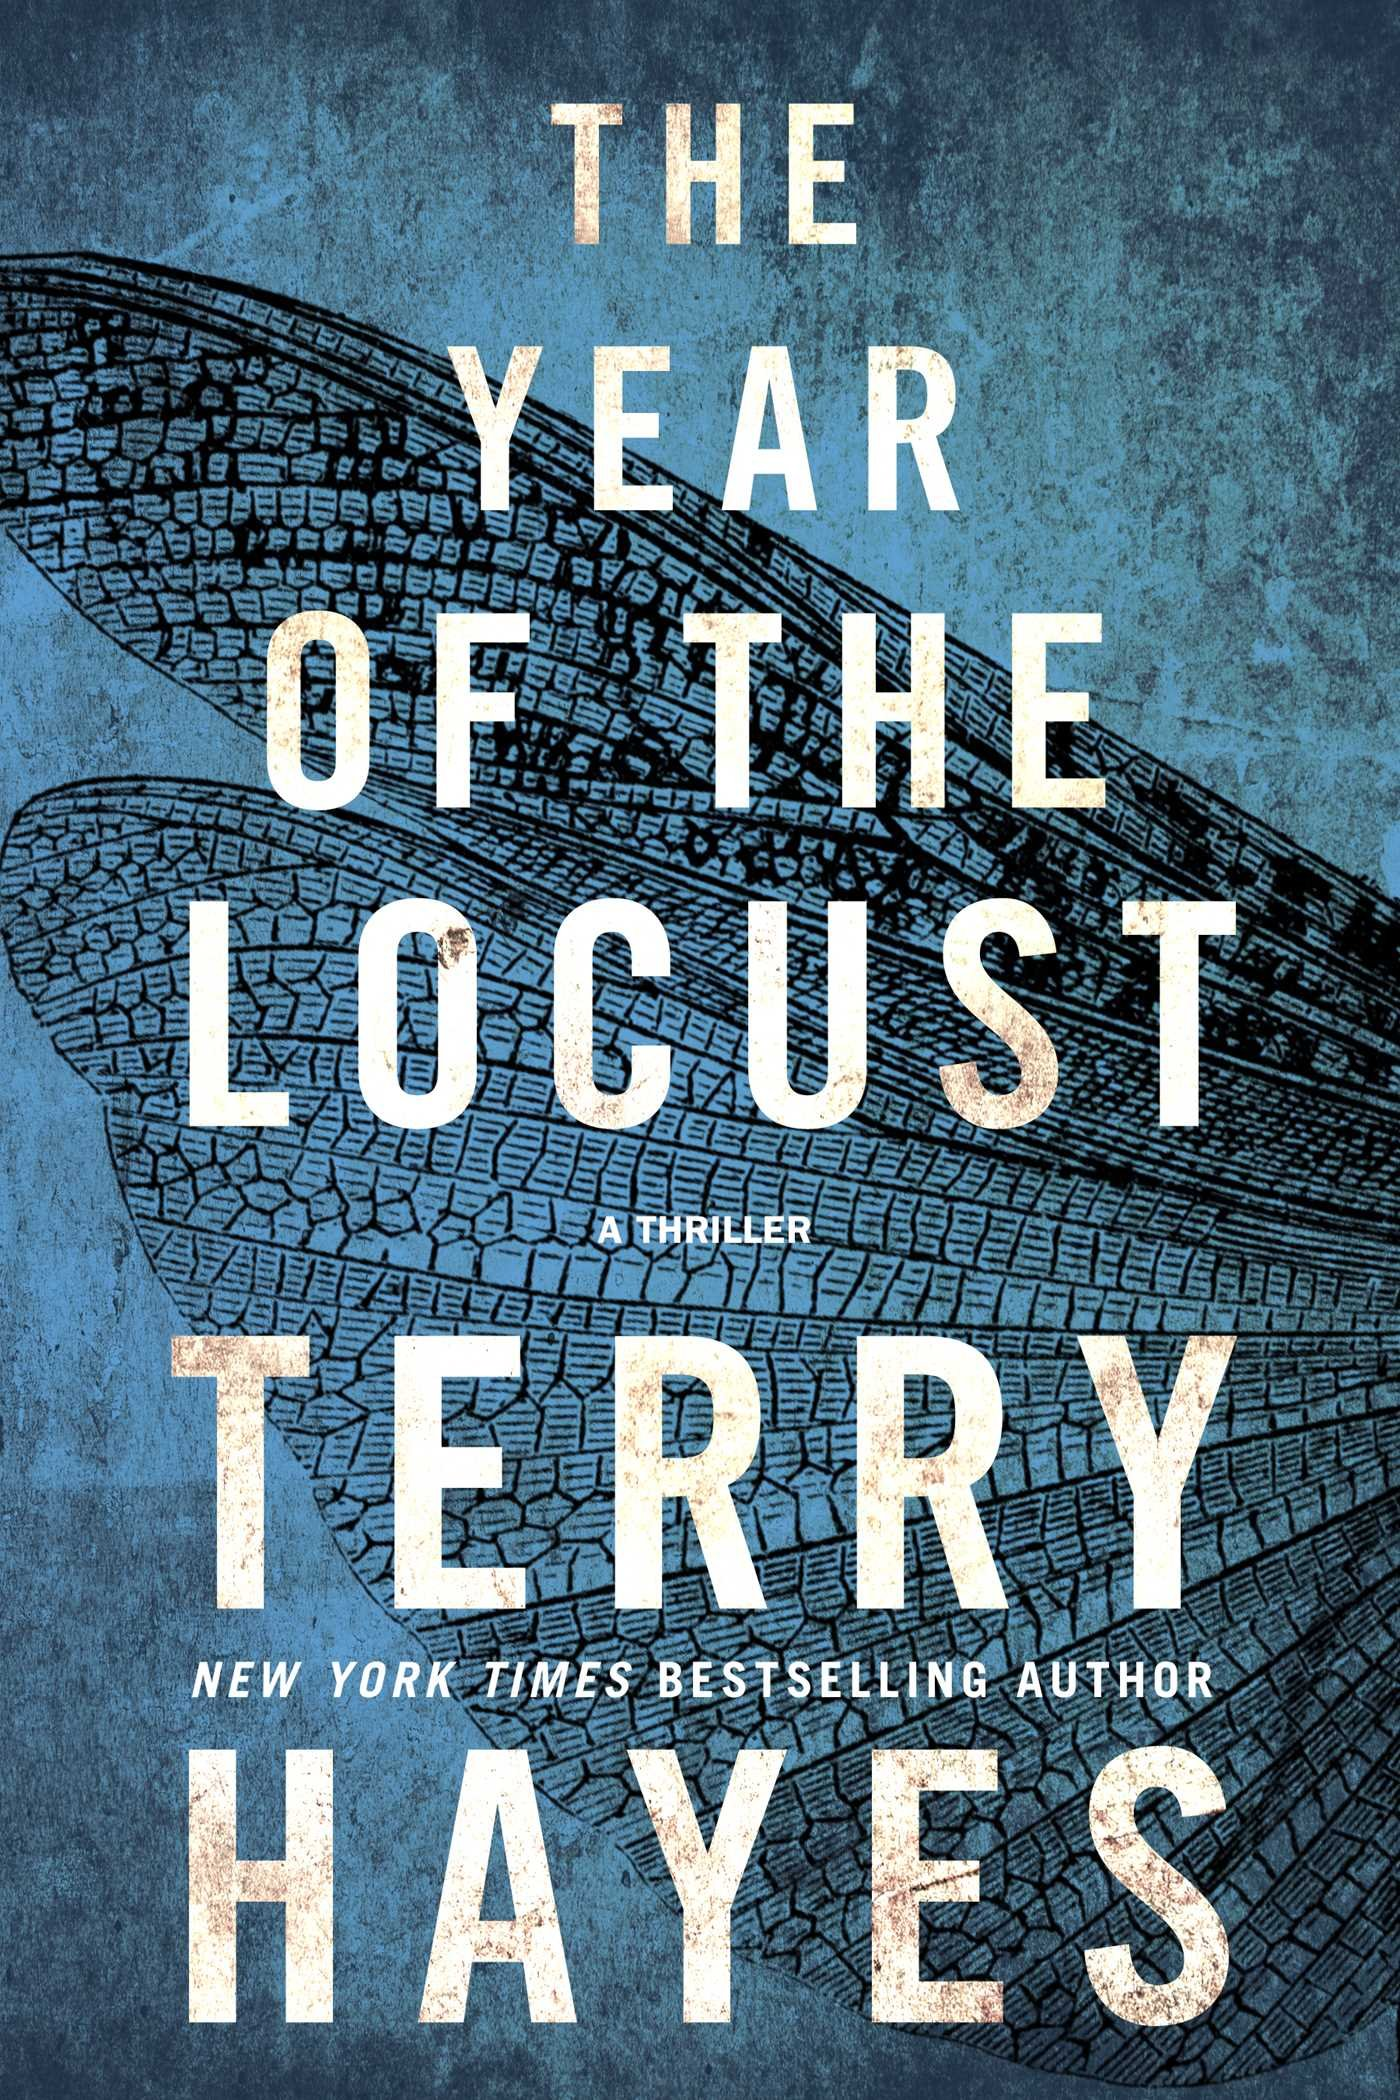 The Year of the Locust: A Thriller